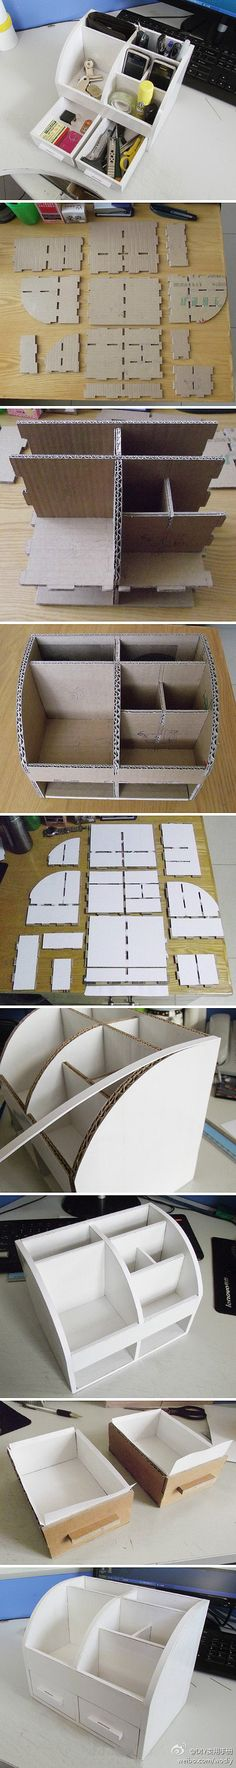 DIY  ::  building an office organizer from cardboard